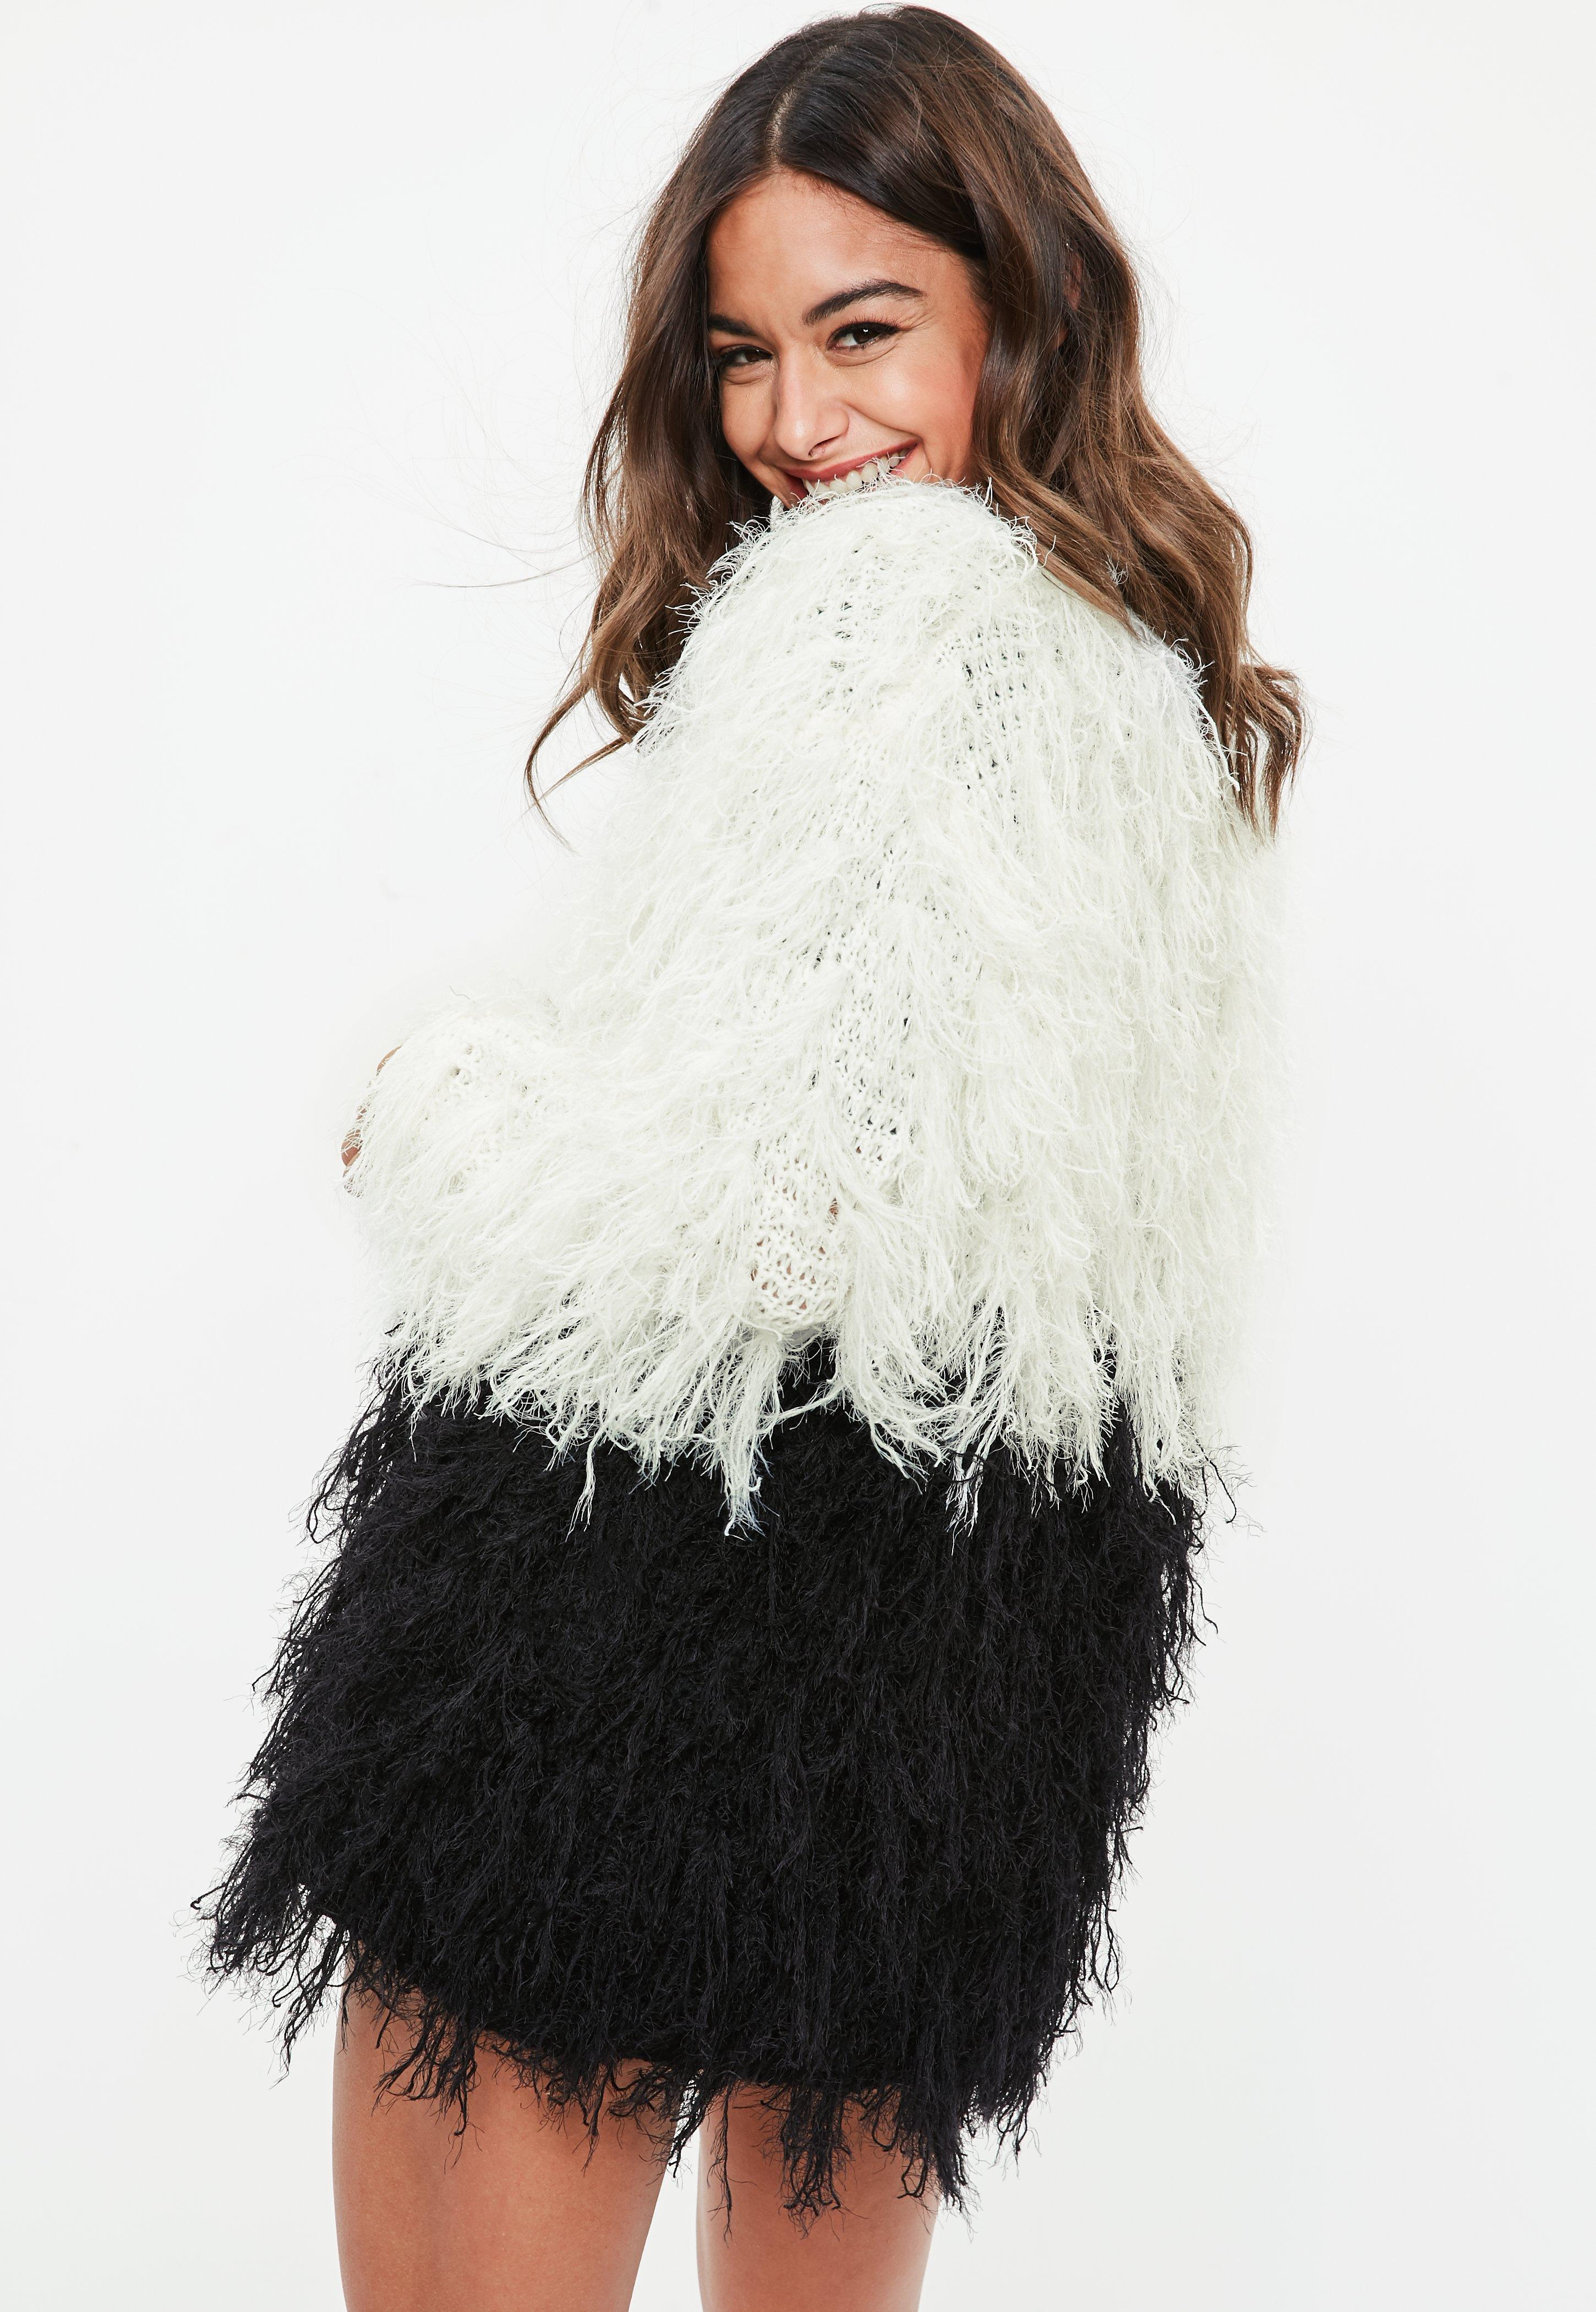 Missguided Monochrome Longline Shaggy knitted Cardigan Pictures Online kmaZC